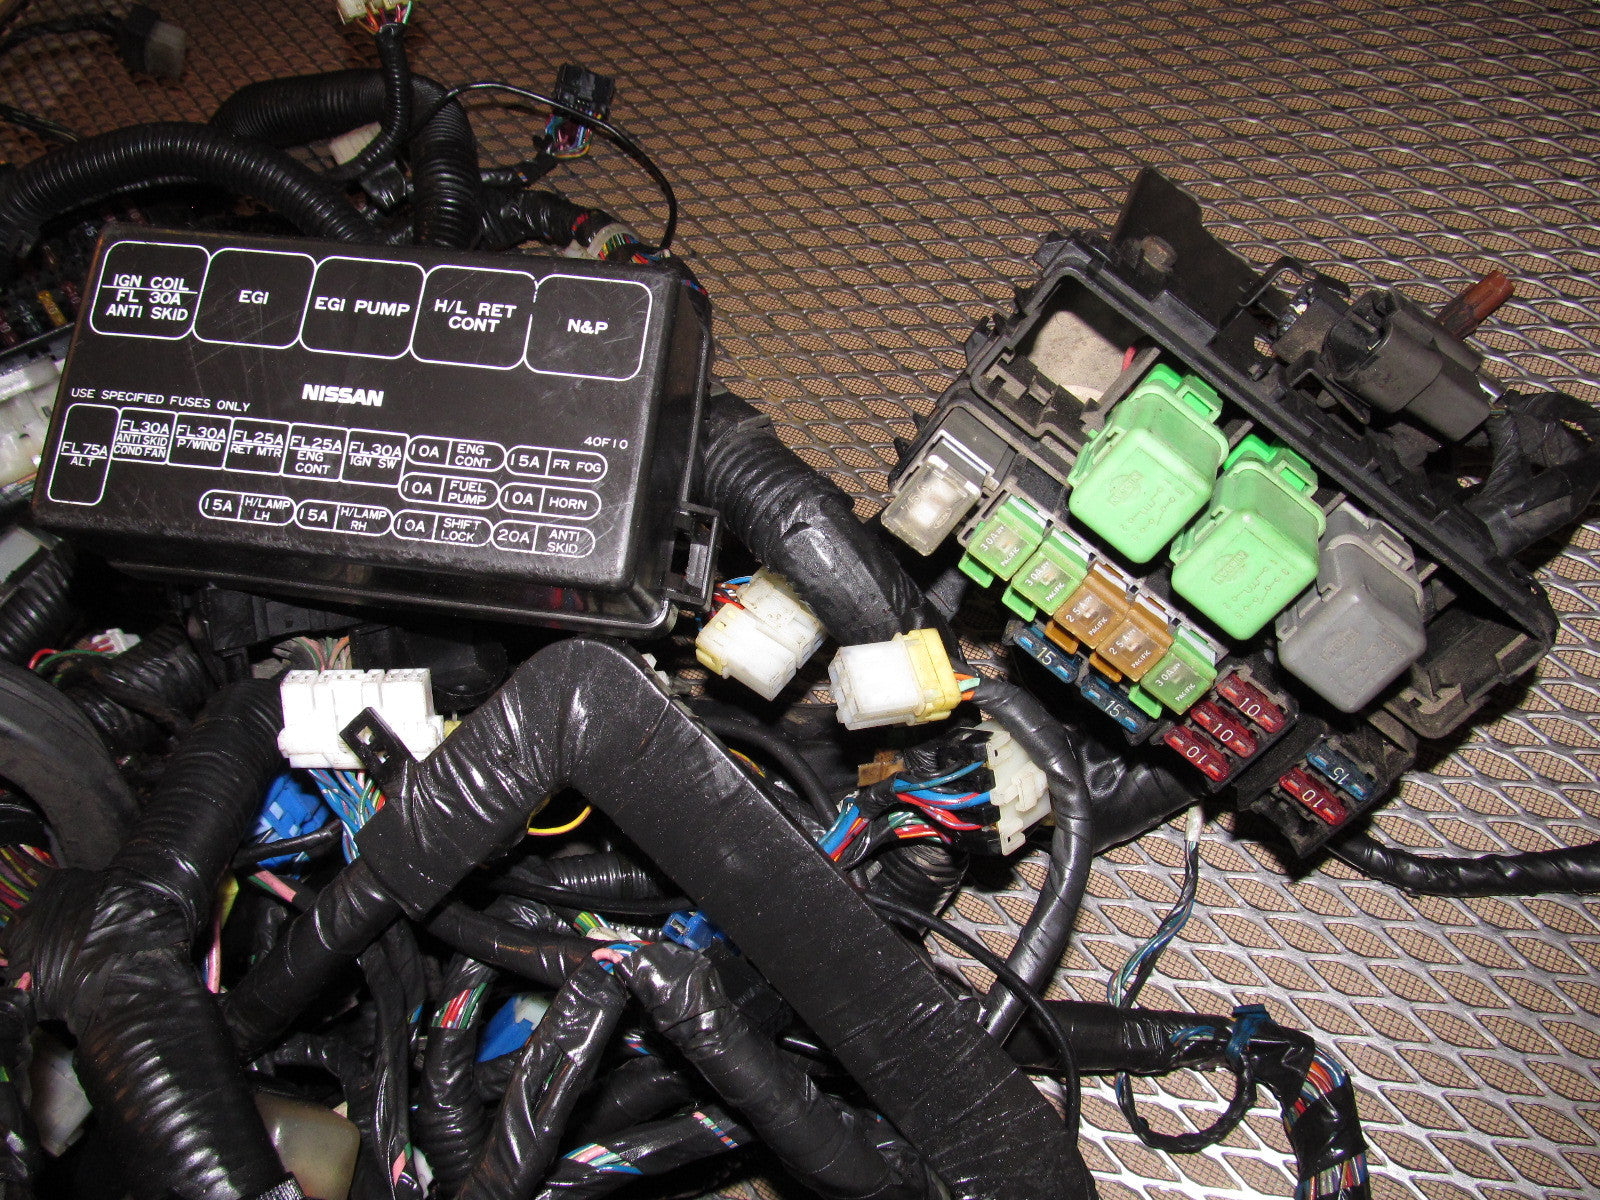 89 240sx Fuse Box - Wiring Diagram Fascinating on